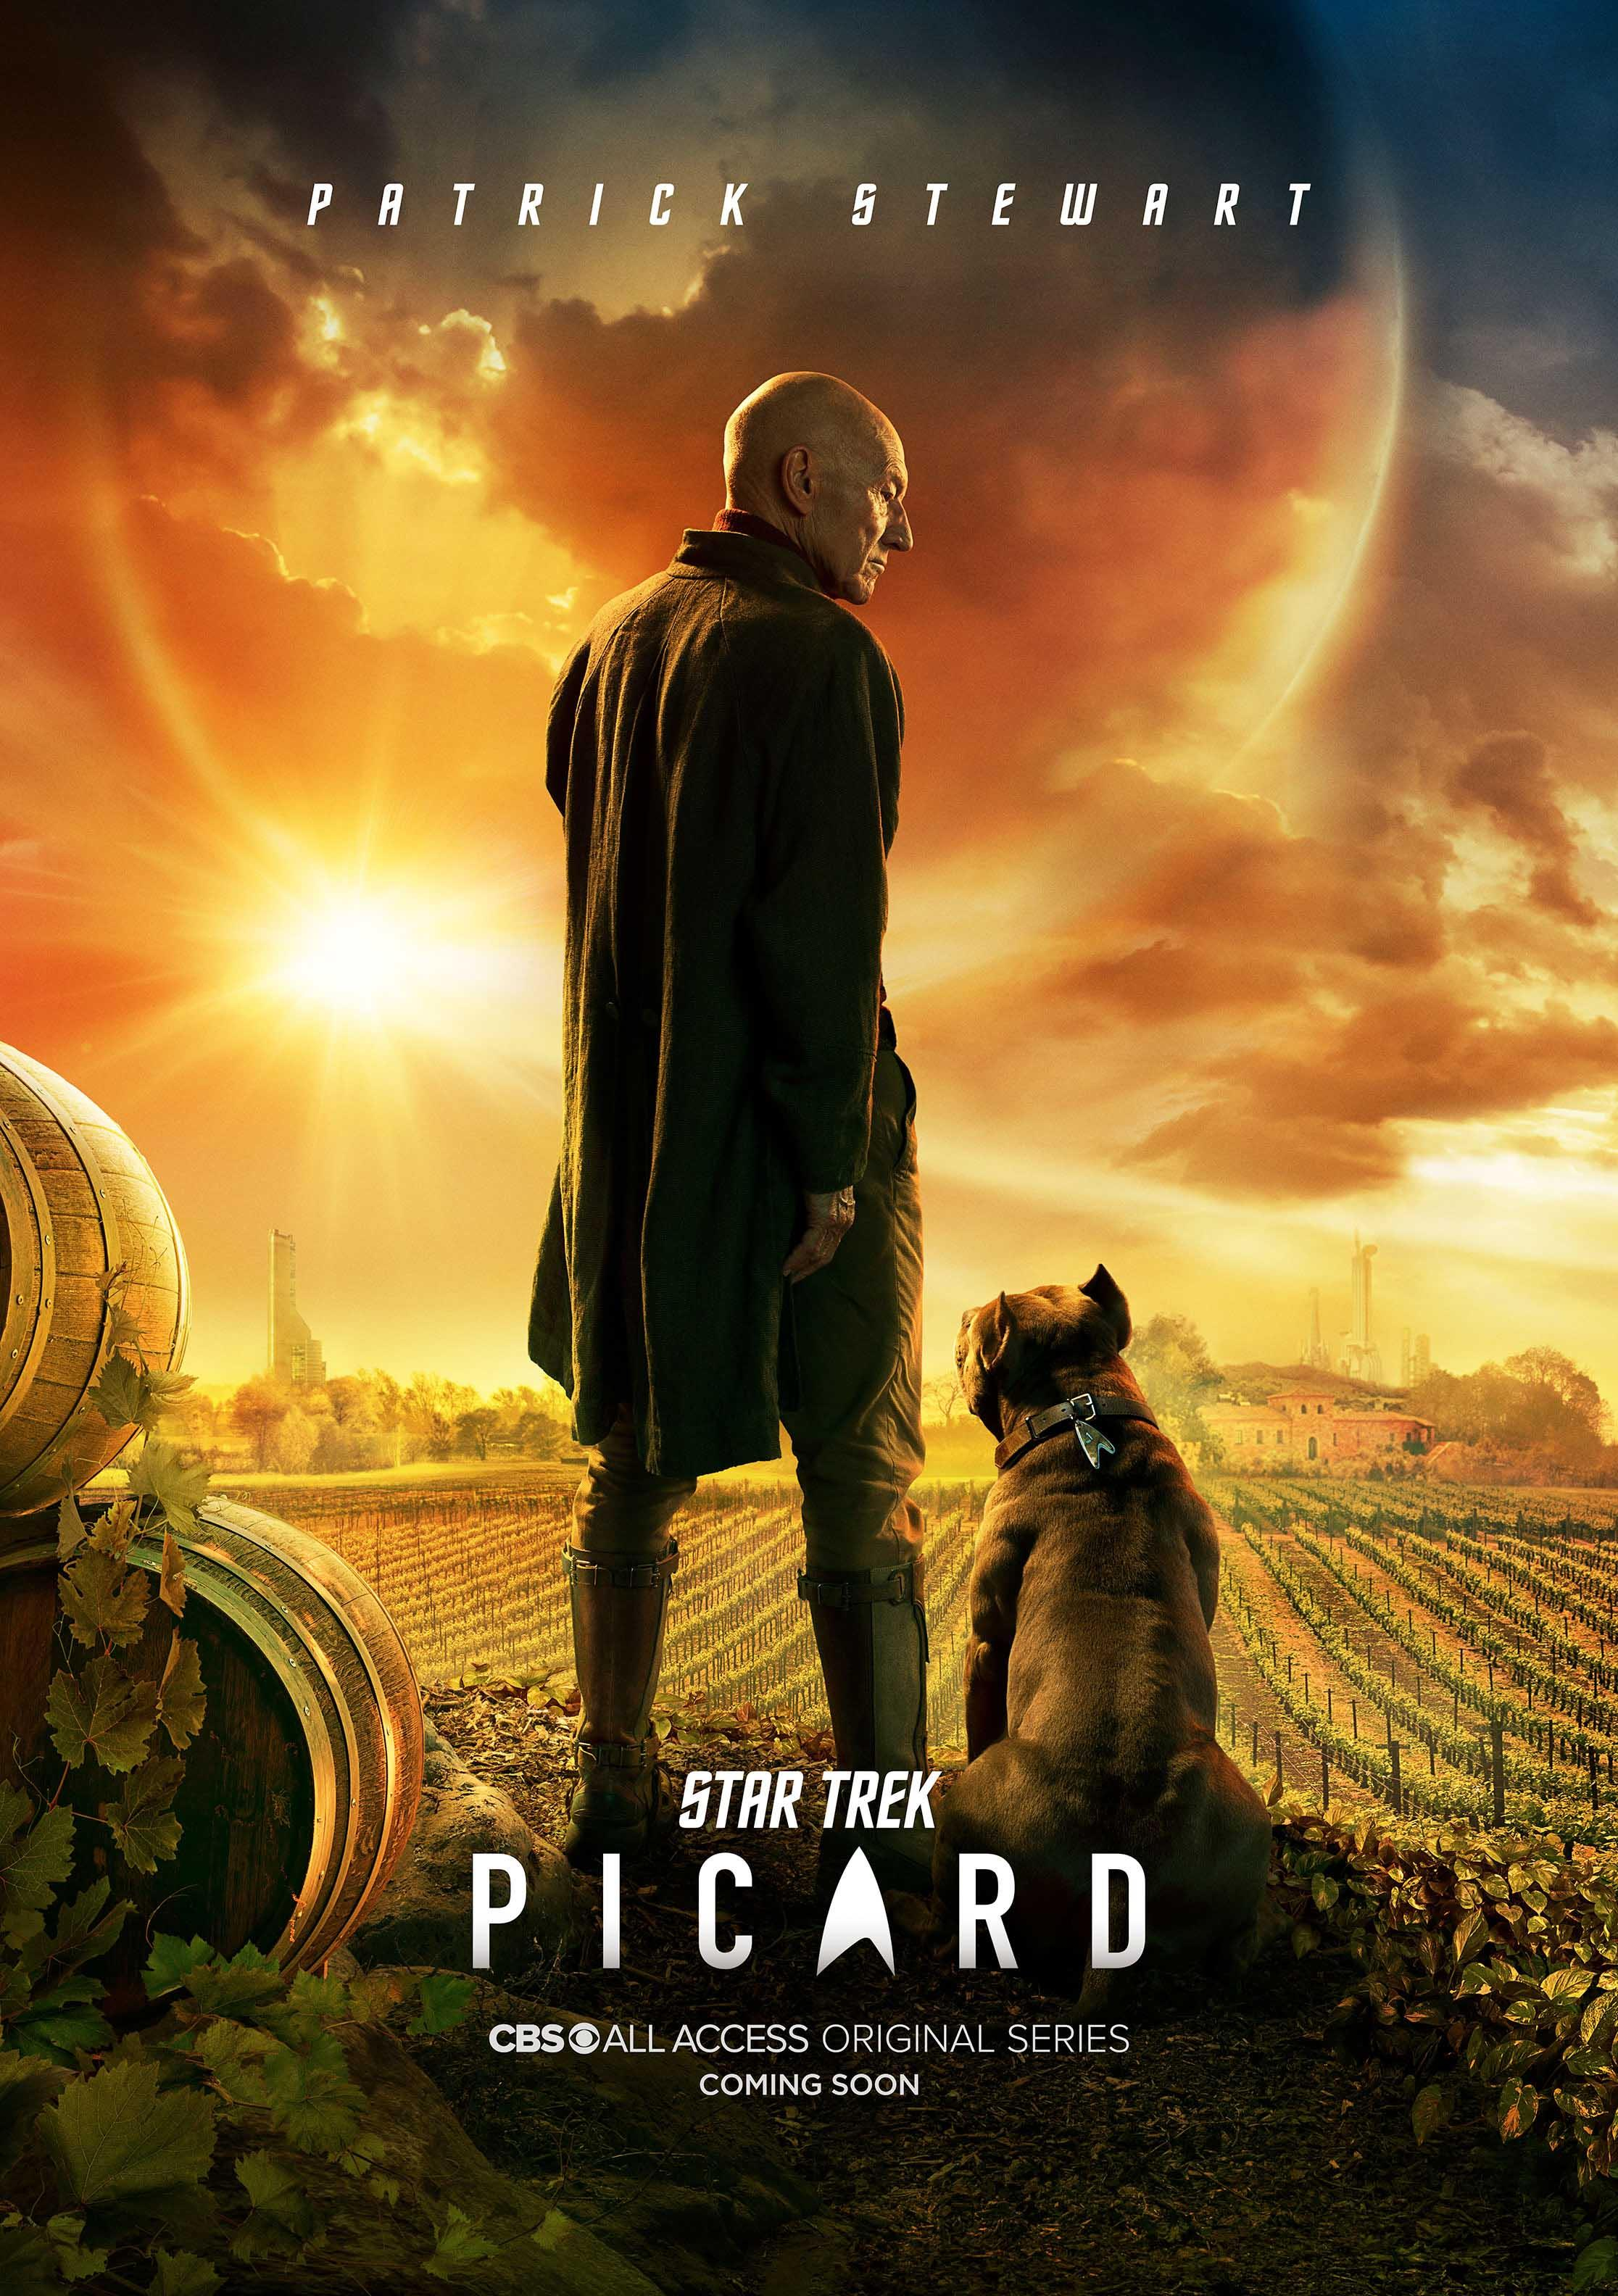 Star Trek: Picard (Credit: CBS)